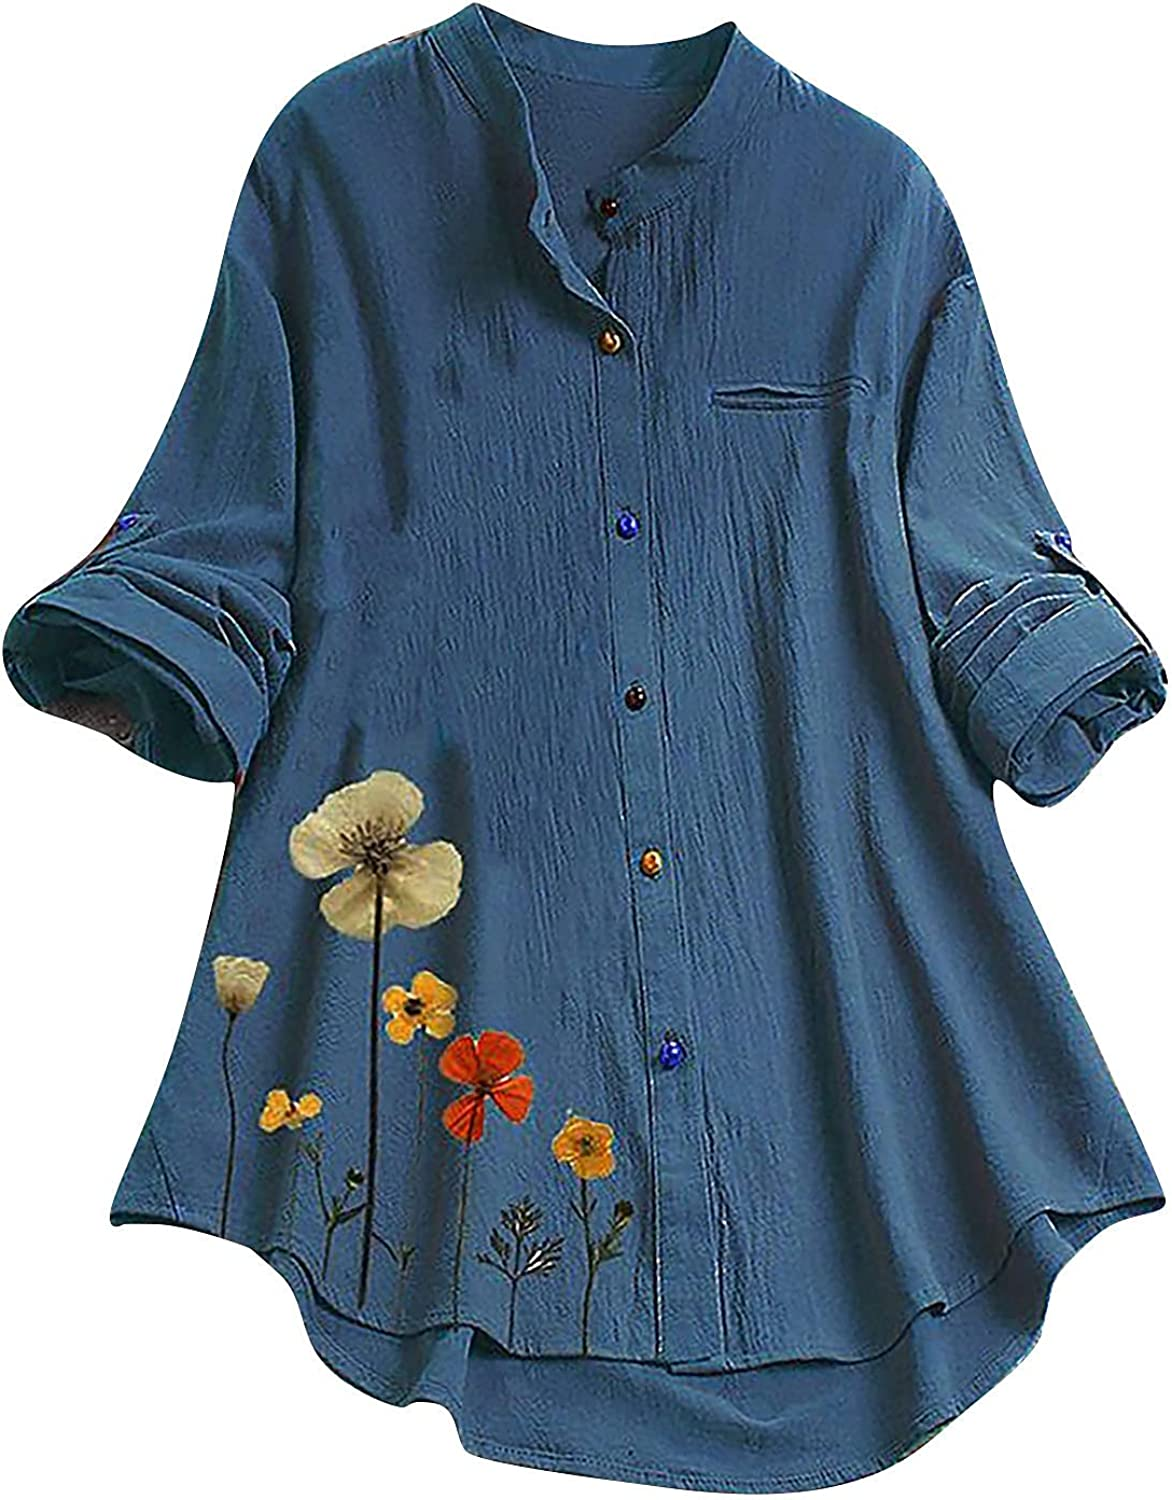 Cotton Linen Shirts for Women New Shipping Free Shipping Crew Casual Sleeve Neck Long Loos Discount mail order